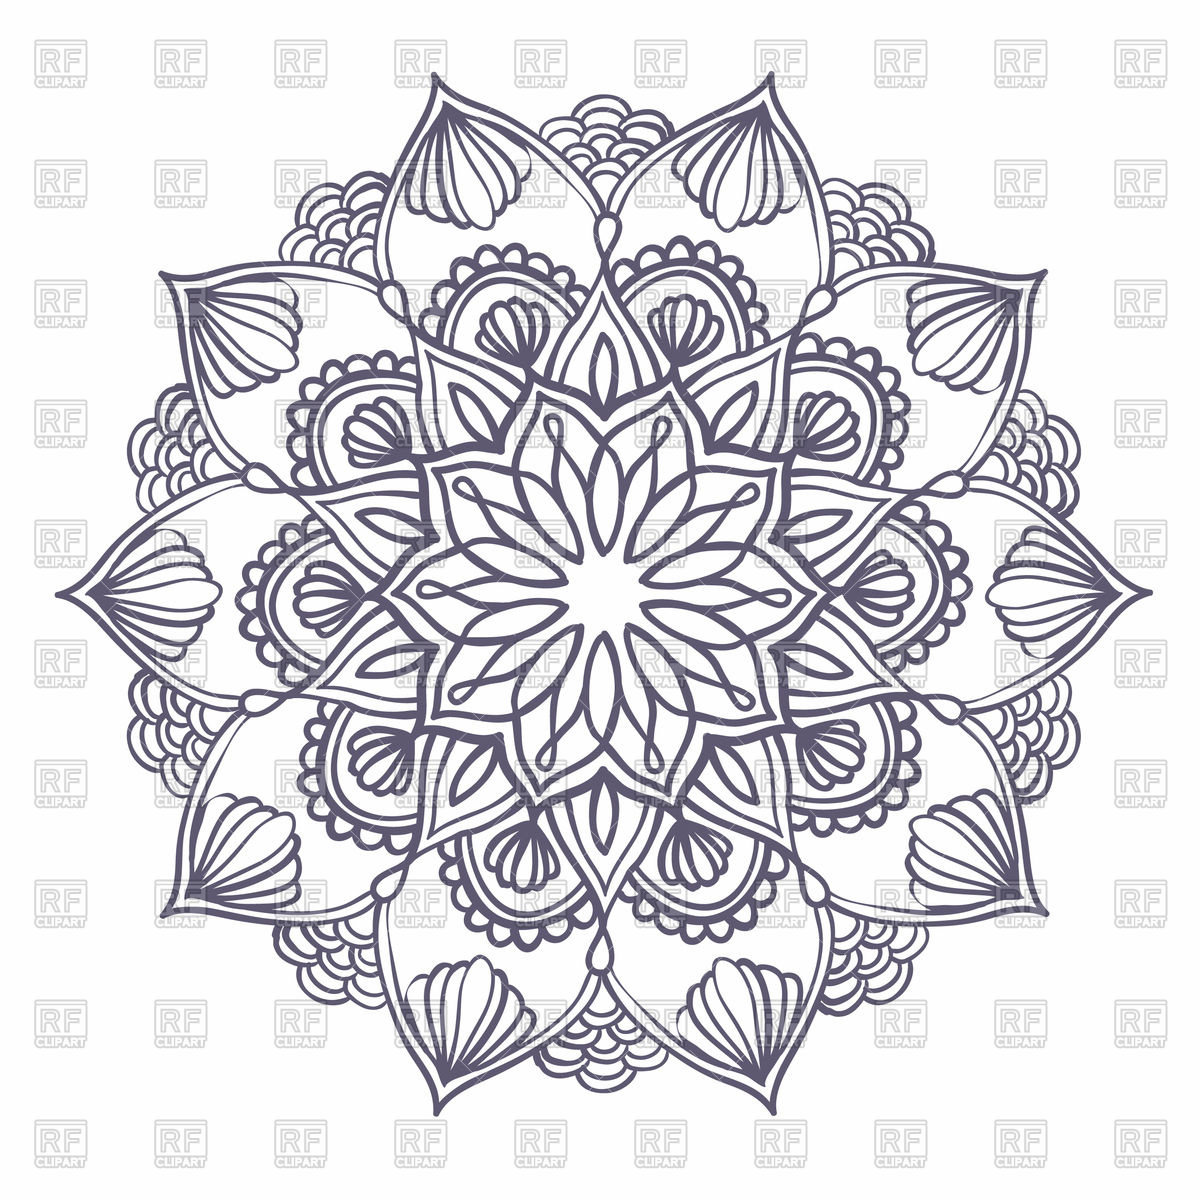 Ornamental round pattern with floral elements.